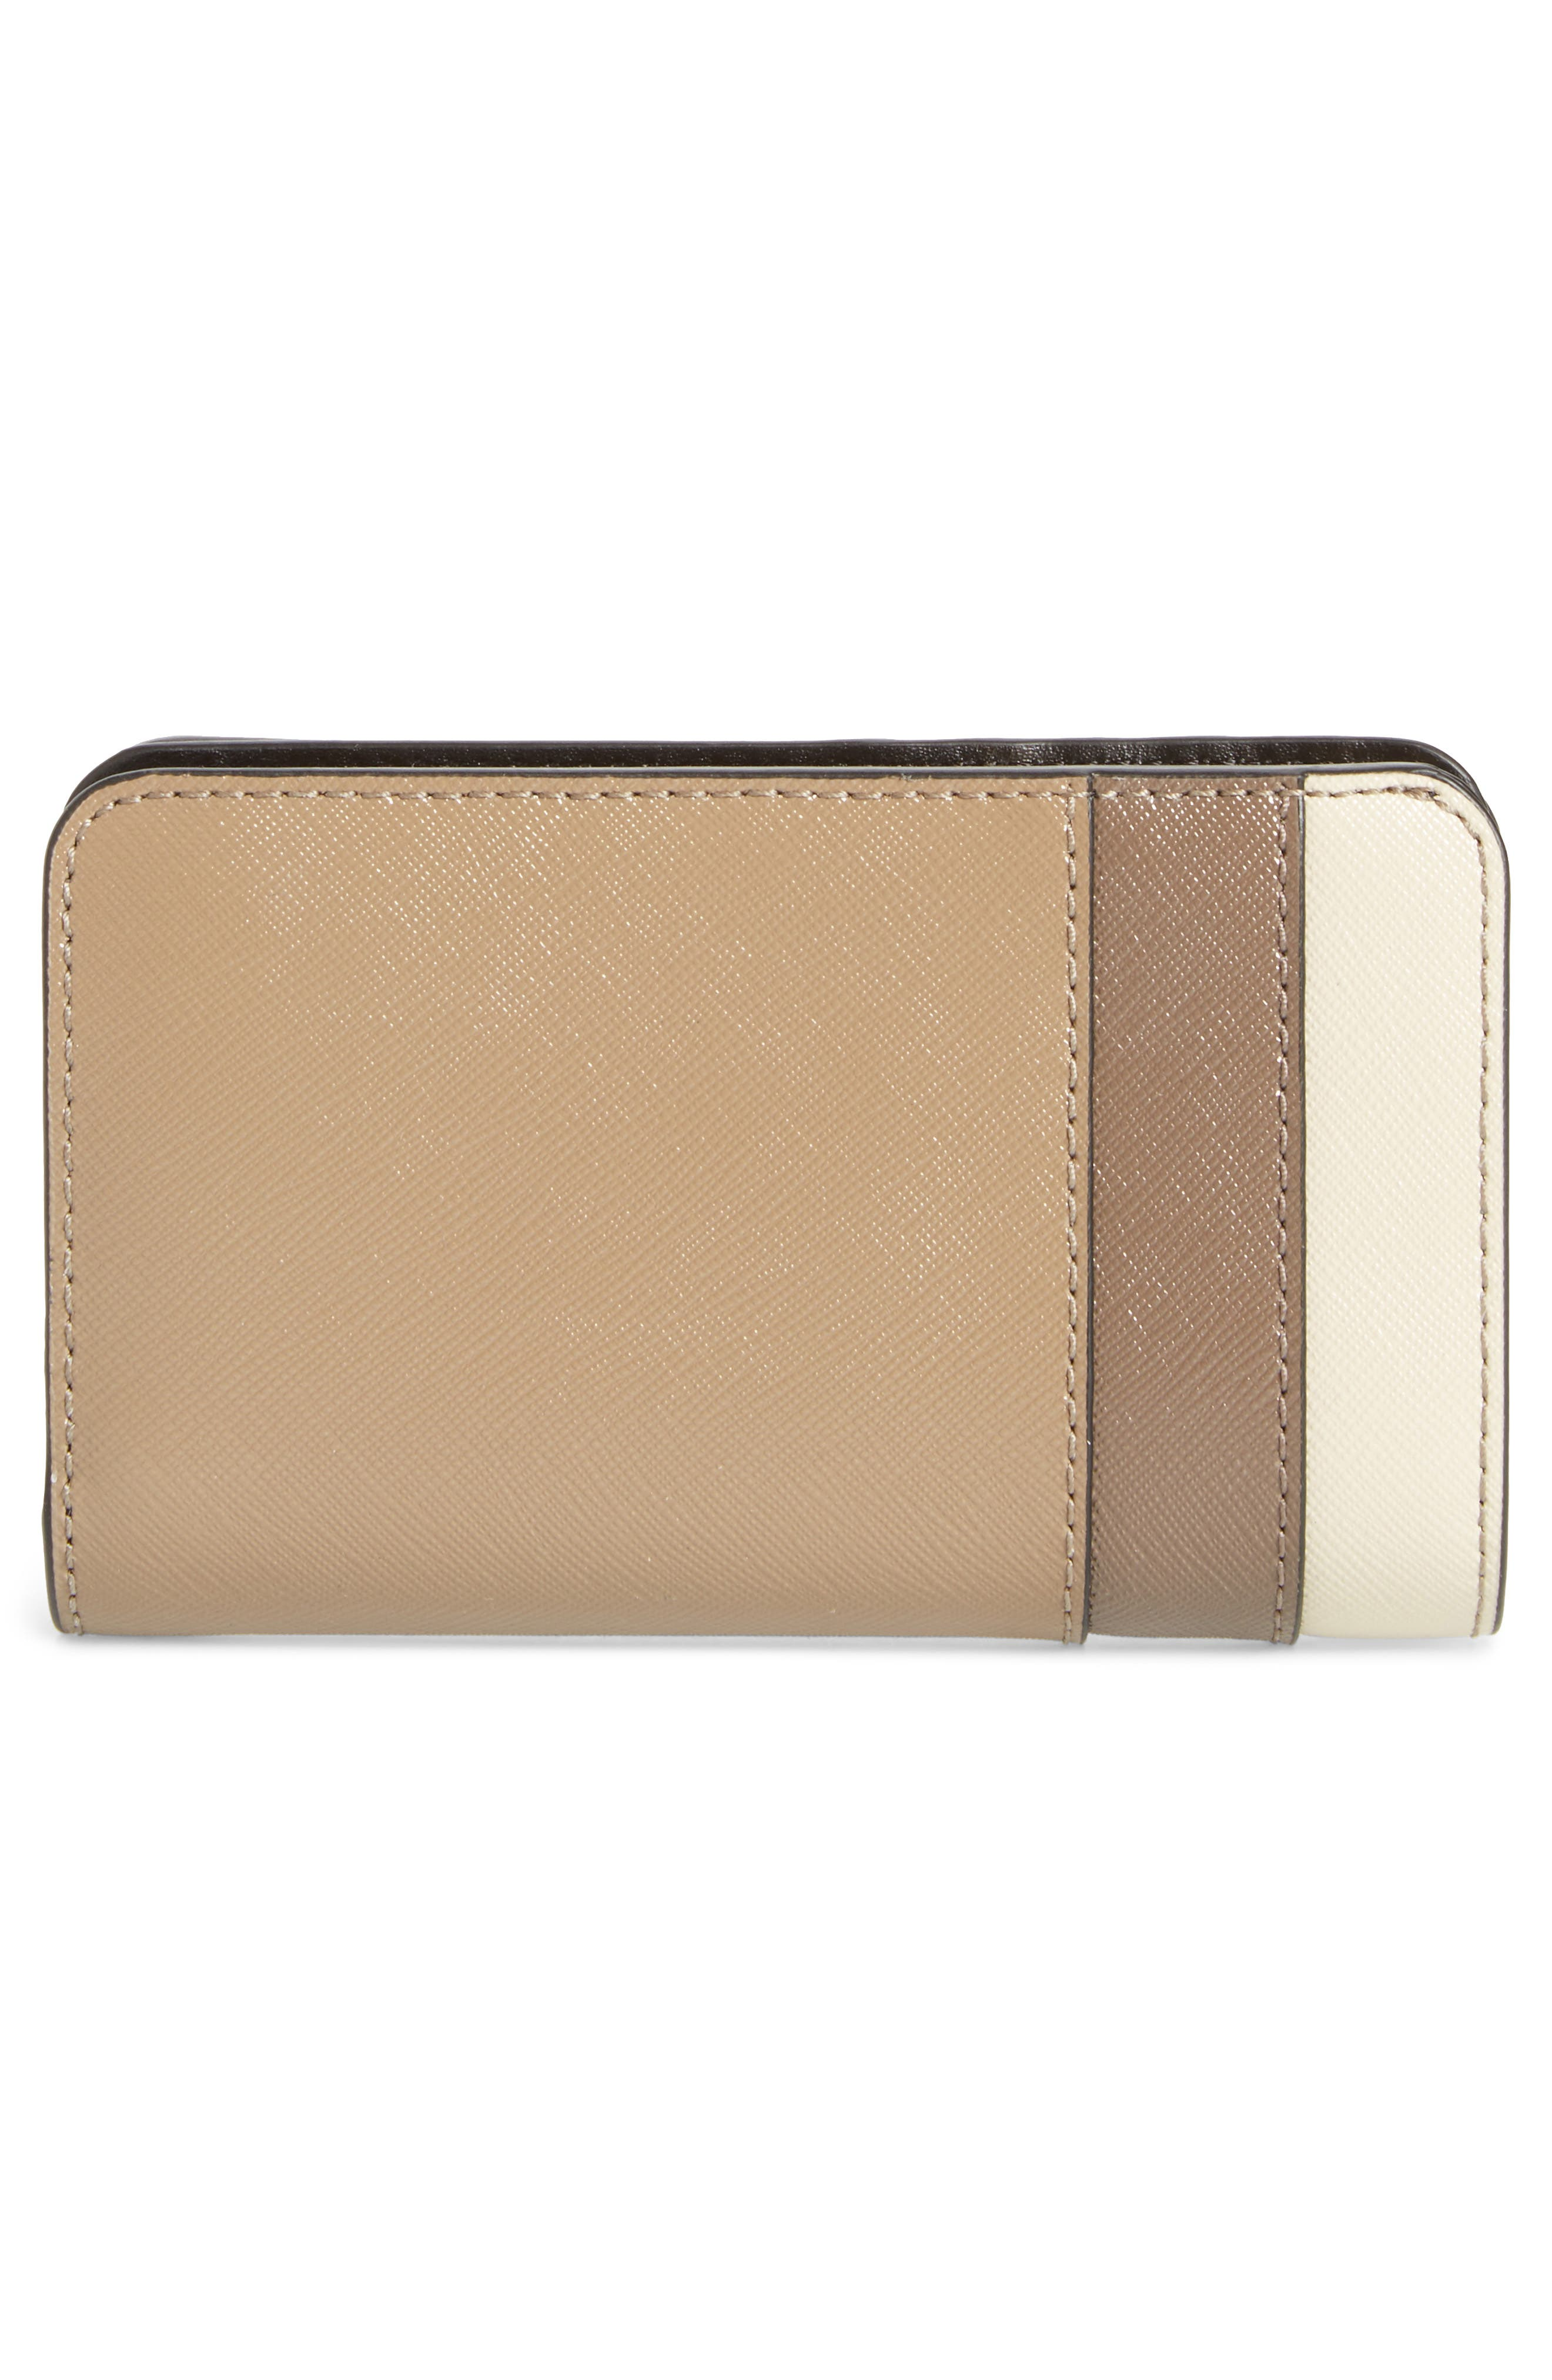 Saffiano Leather Compact Wallet,                             Alternate thumbnail 2, color,                             French Grey Multi